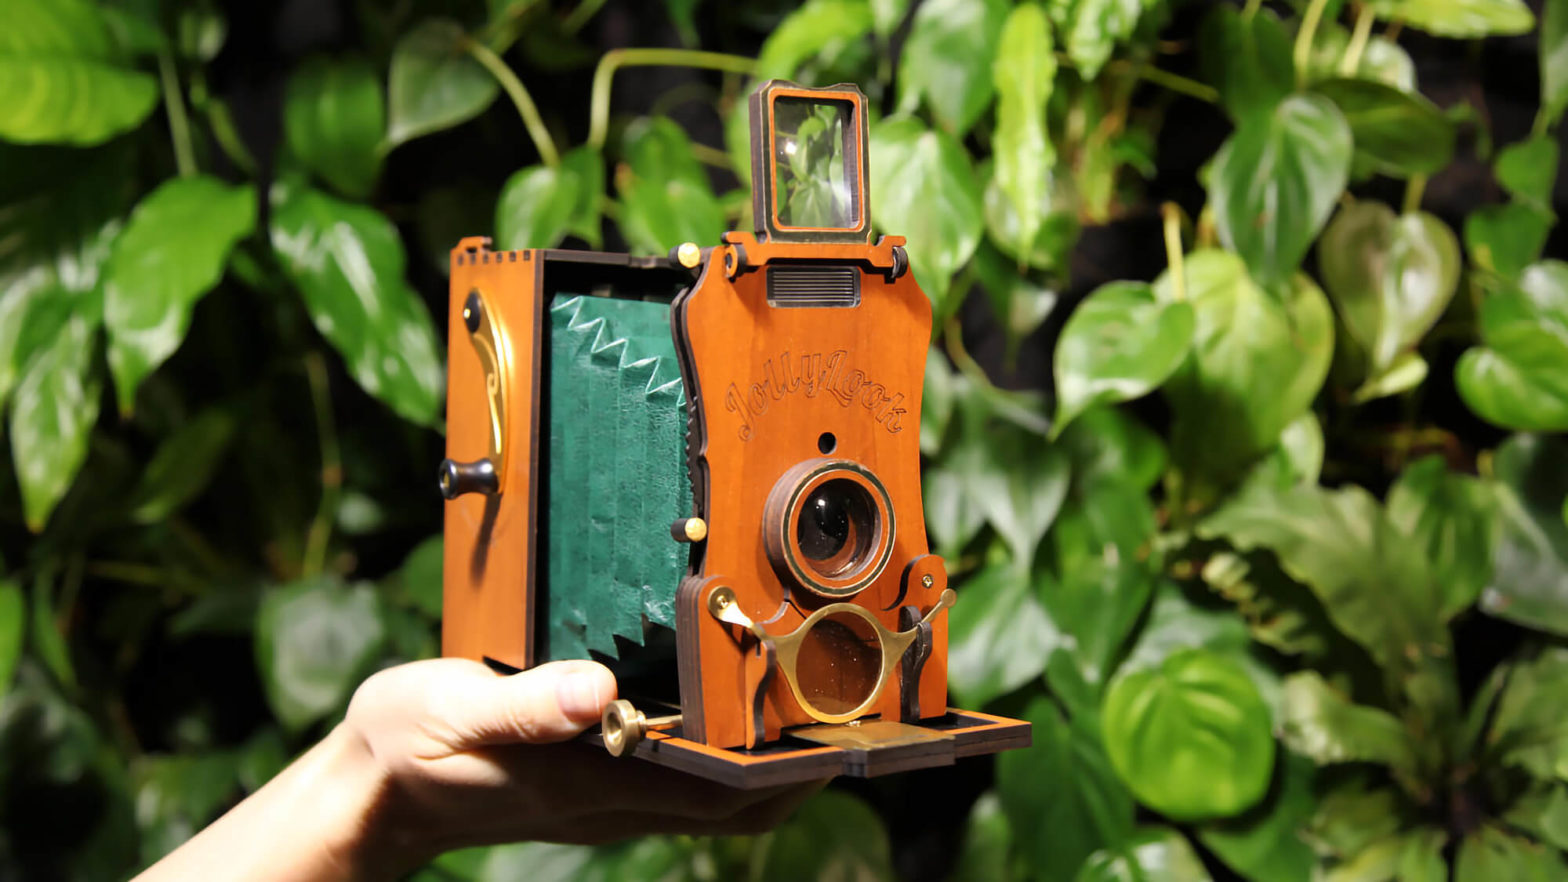 Jollylook Auto Vintage-style Instant Film Camera